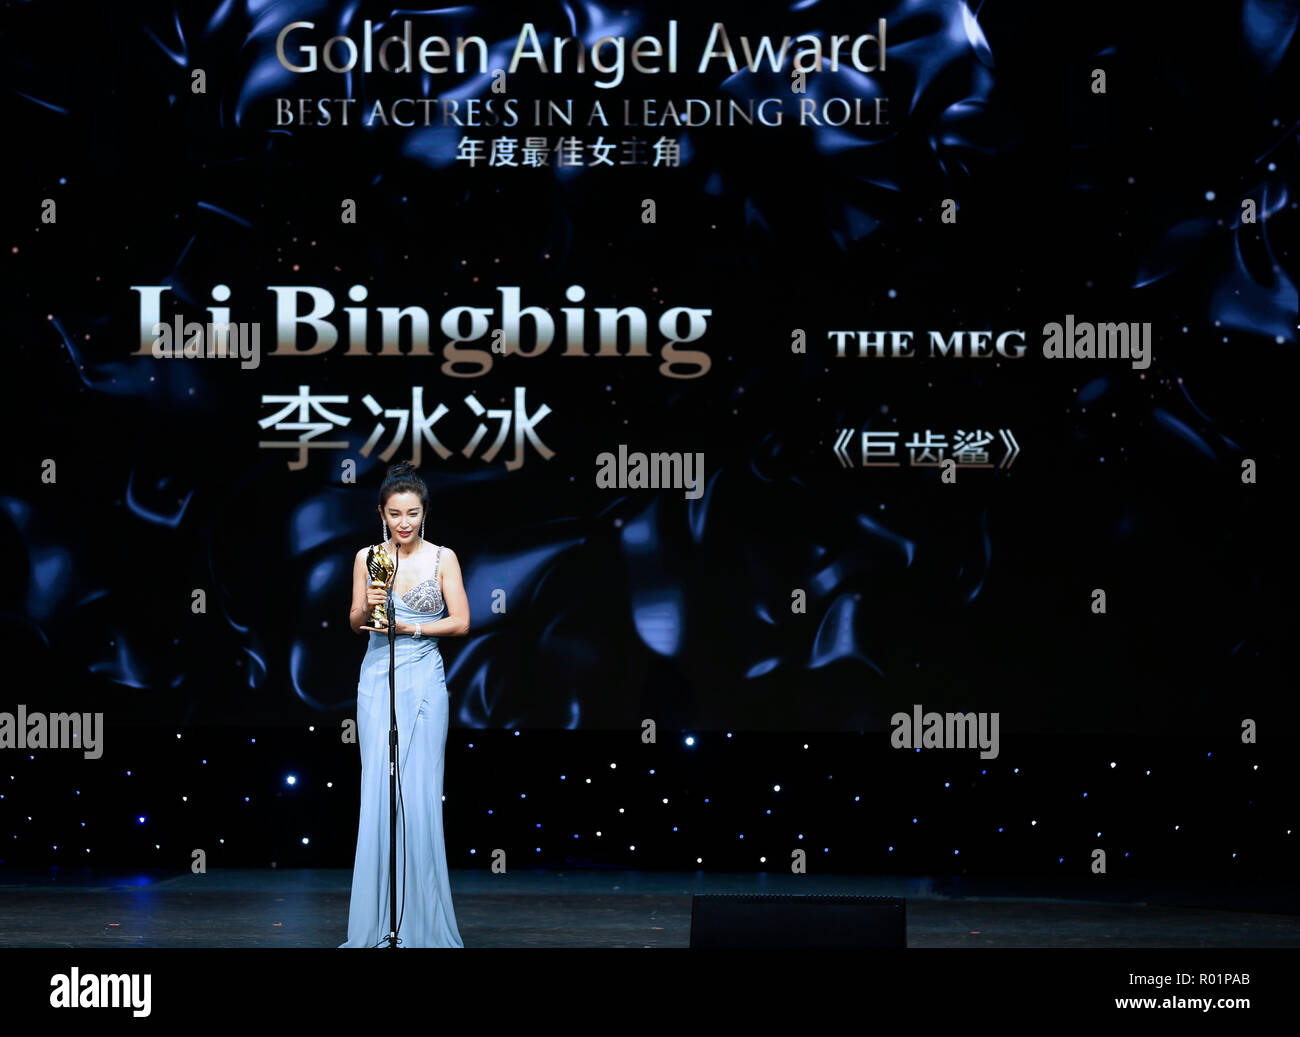 (181031) -- LOS ANGELES, Oct. 31, 2018 (Xinhua) -- Actress Li Bingbing who won the Best Actress Award, receives the trophy during the awarding ceremony of the 14th Chinese American Film Festival (CAFF) in Los Angeles, the United States, Oct. 30, 2018. The 14th Chinese American Film Festival (CAFF) kicked off Tuesday at the Ricardo Montalban Theater in Hollywood in the U.S. city of Los Angeles. (Xinhua/Li Ying)(rh) - Stock Image